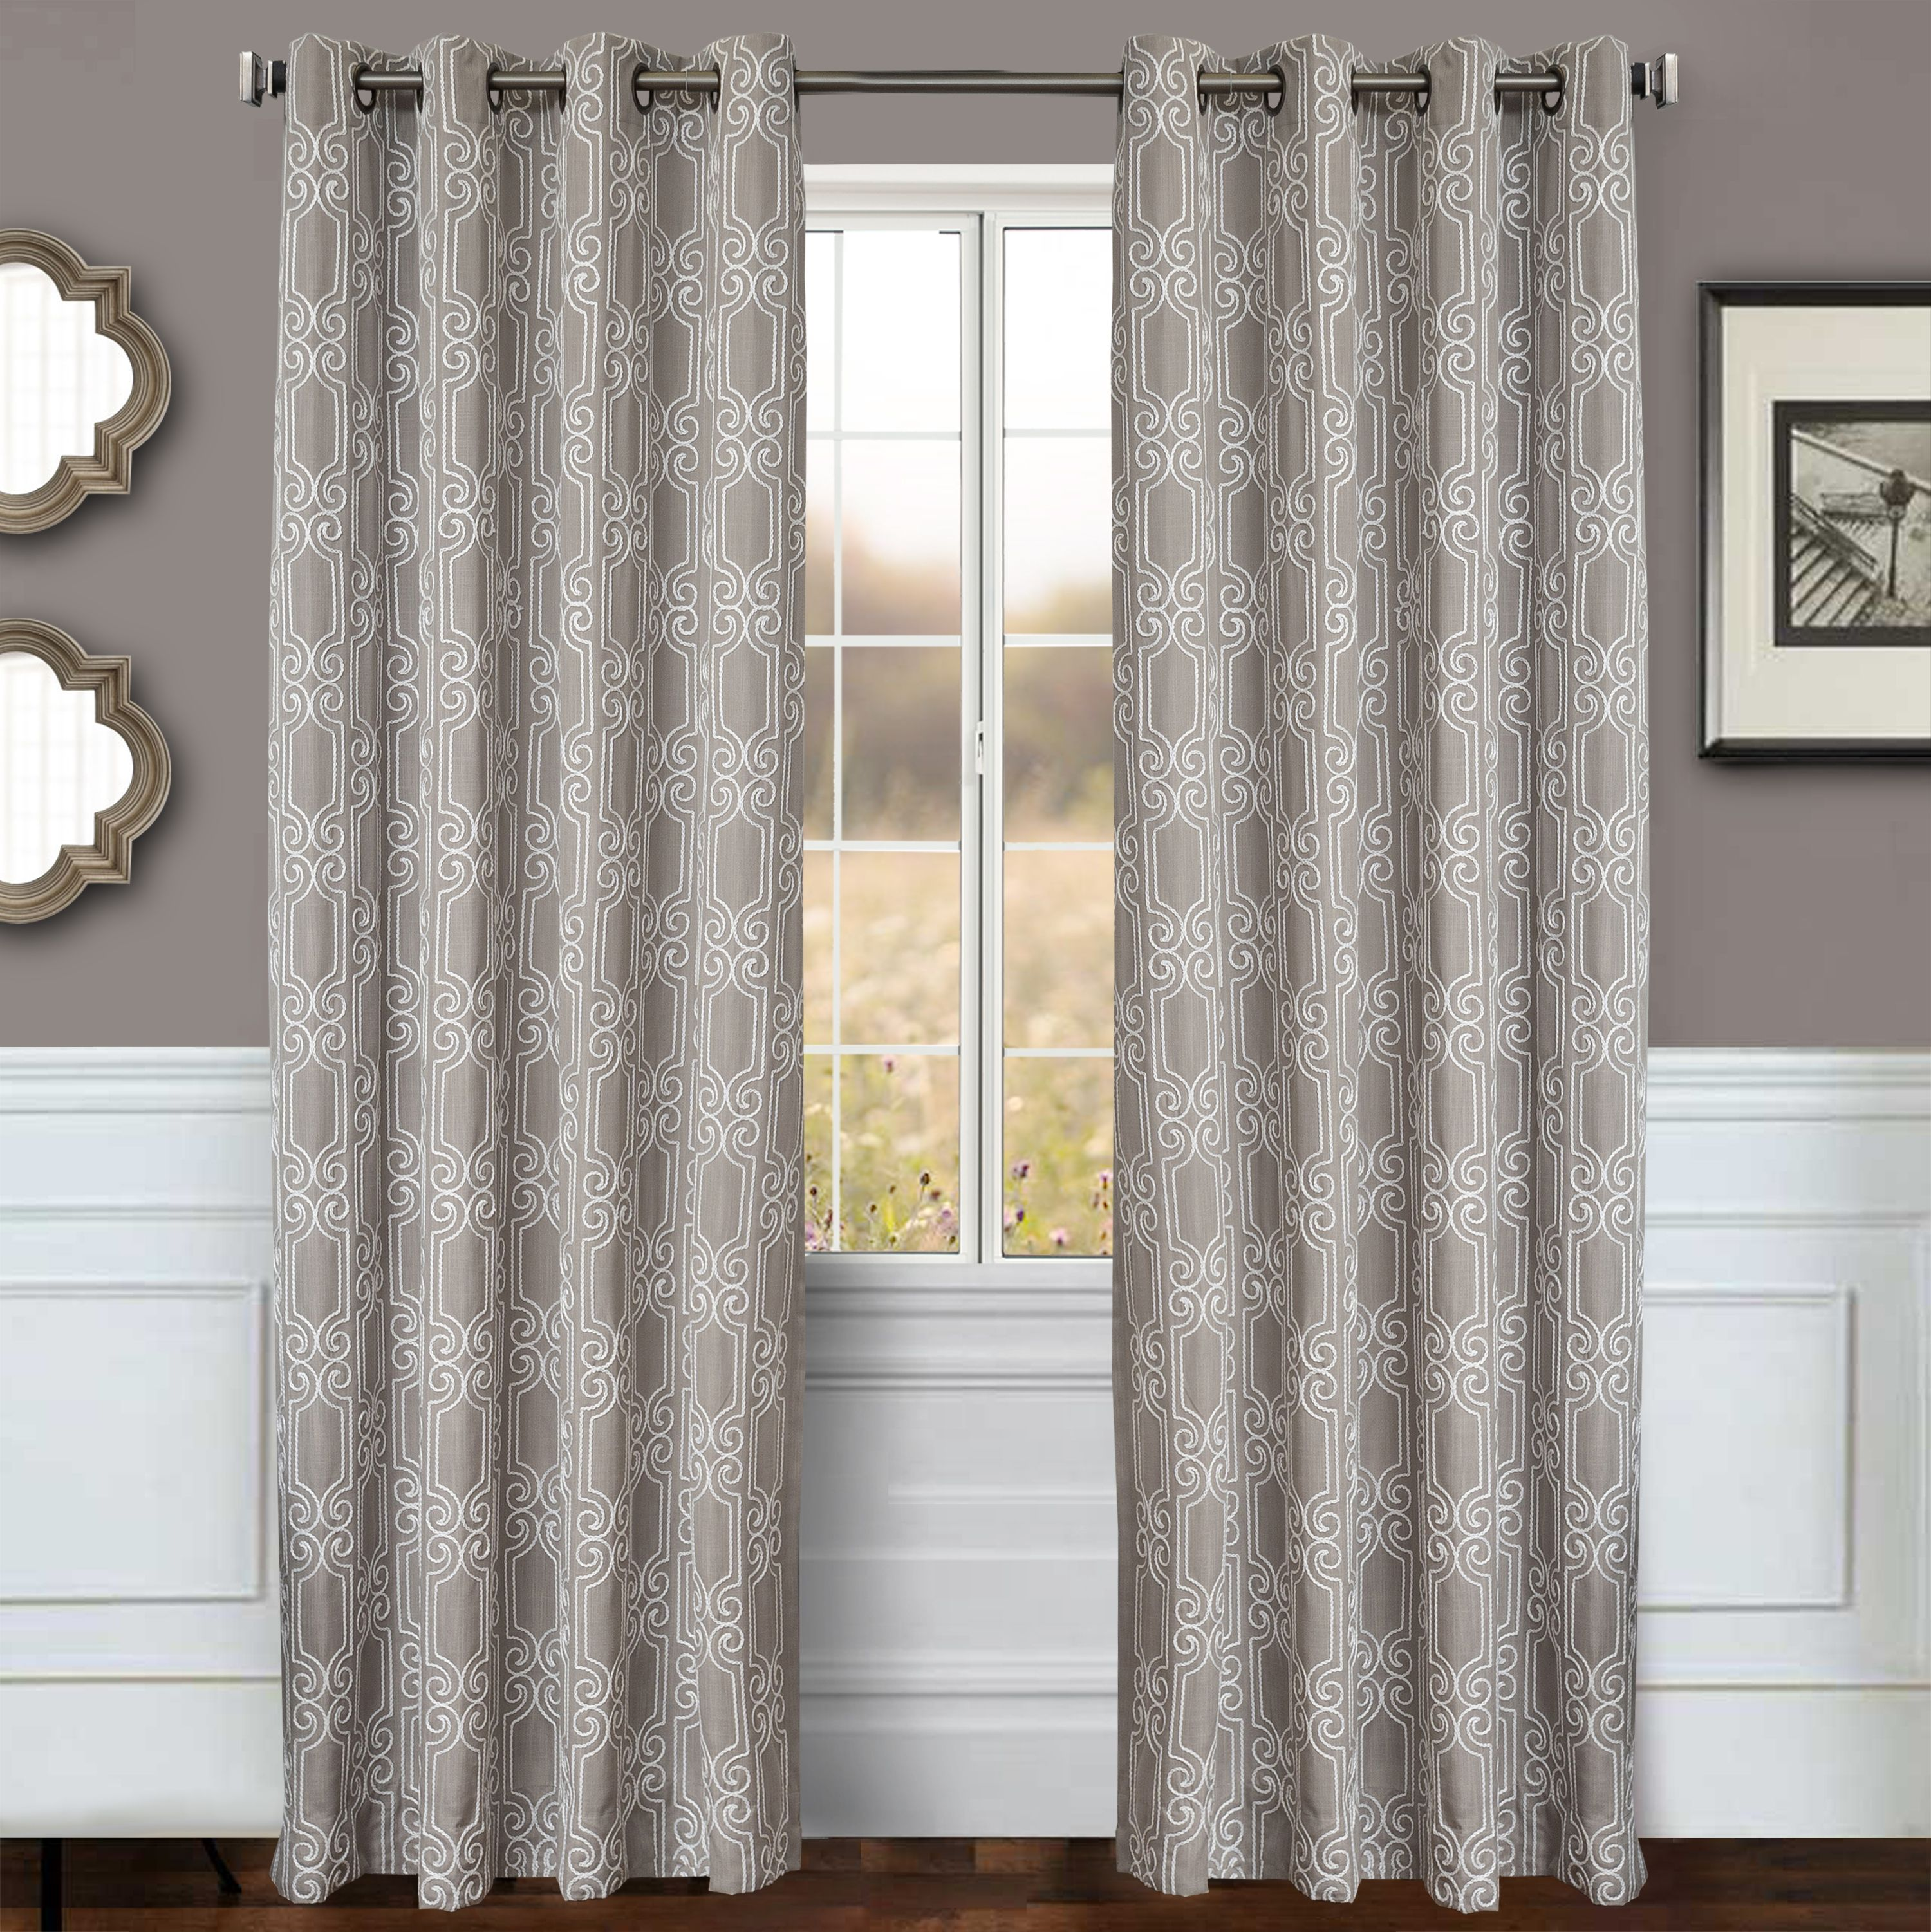 Bexley 96 Embroidered Panel Curtain White Gray Cool Curtains